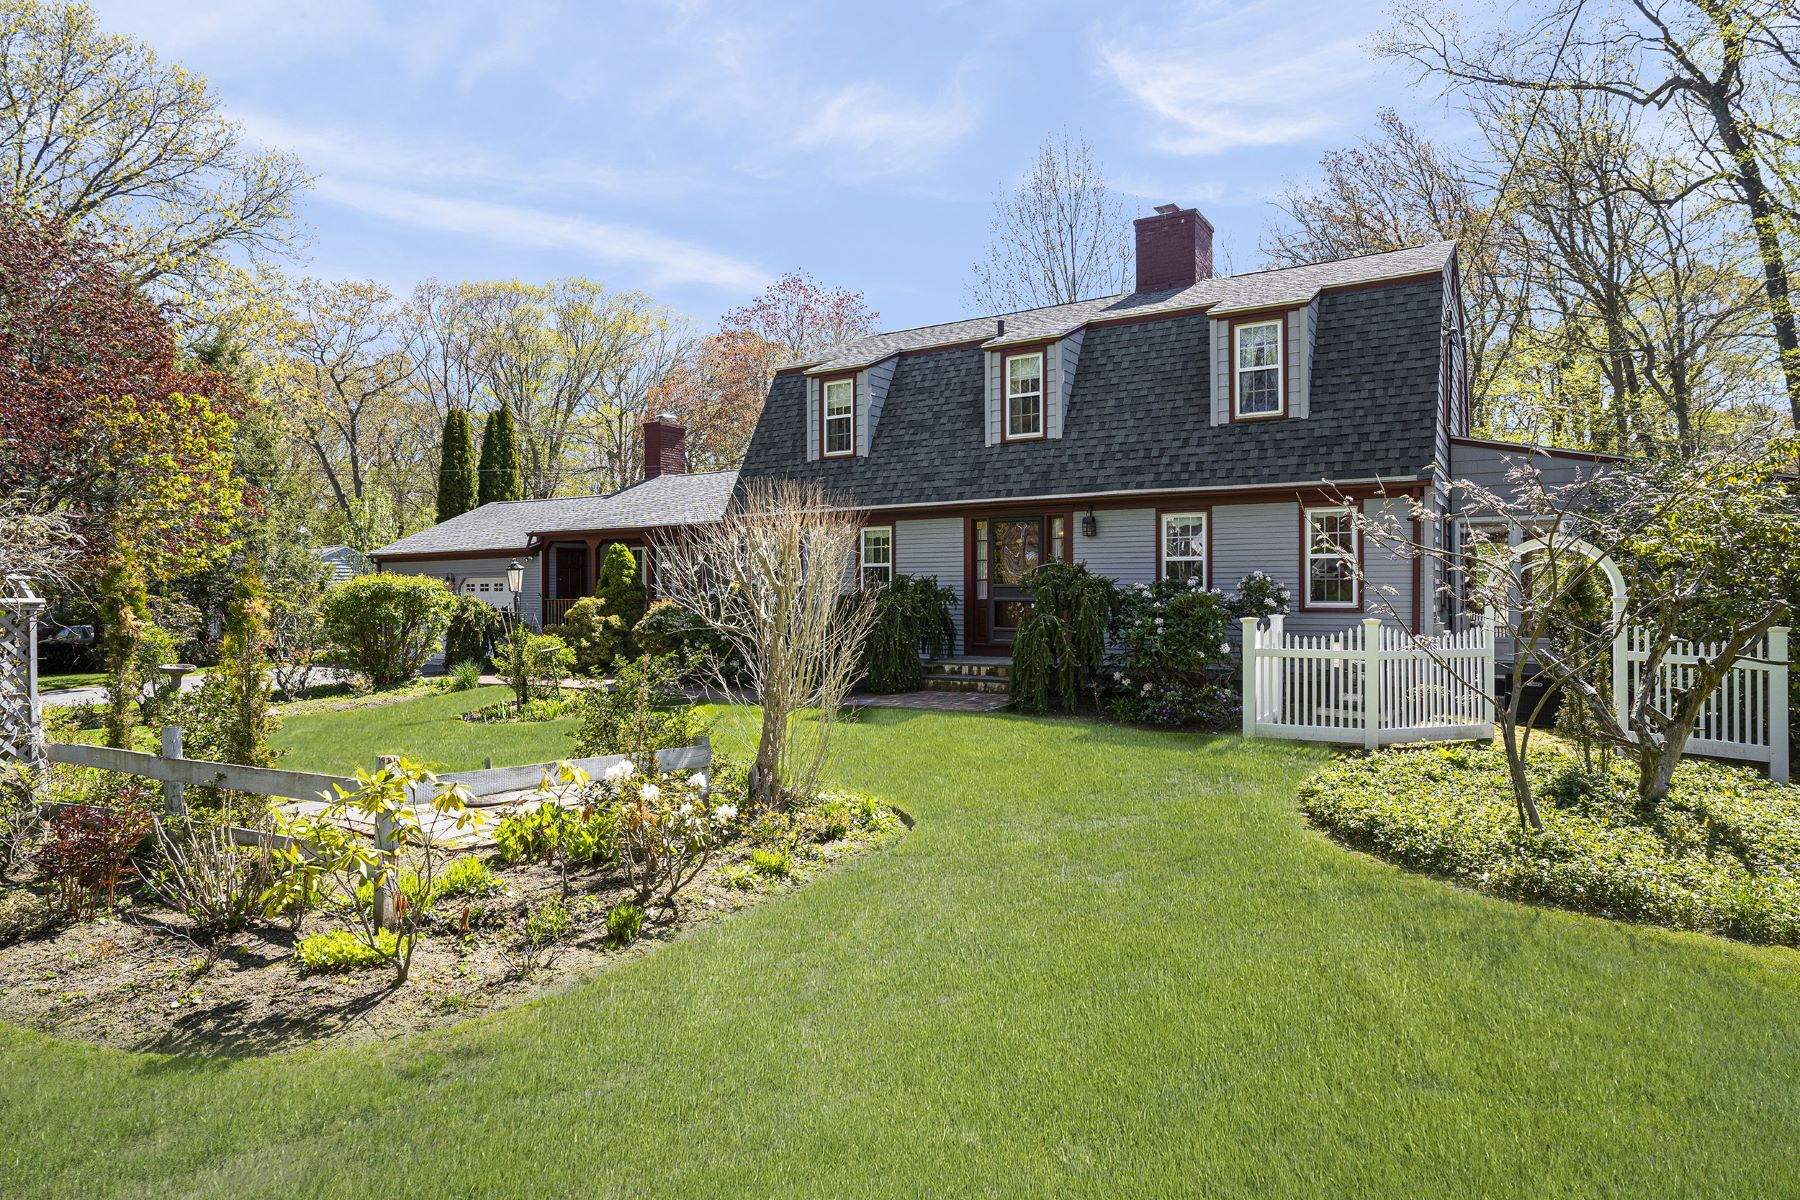 Single Family Homes for Sale at 5 Great Road, East Greenwich, RI 5 Great Road East Greenwich, Rhode Island 02818 United States